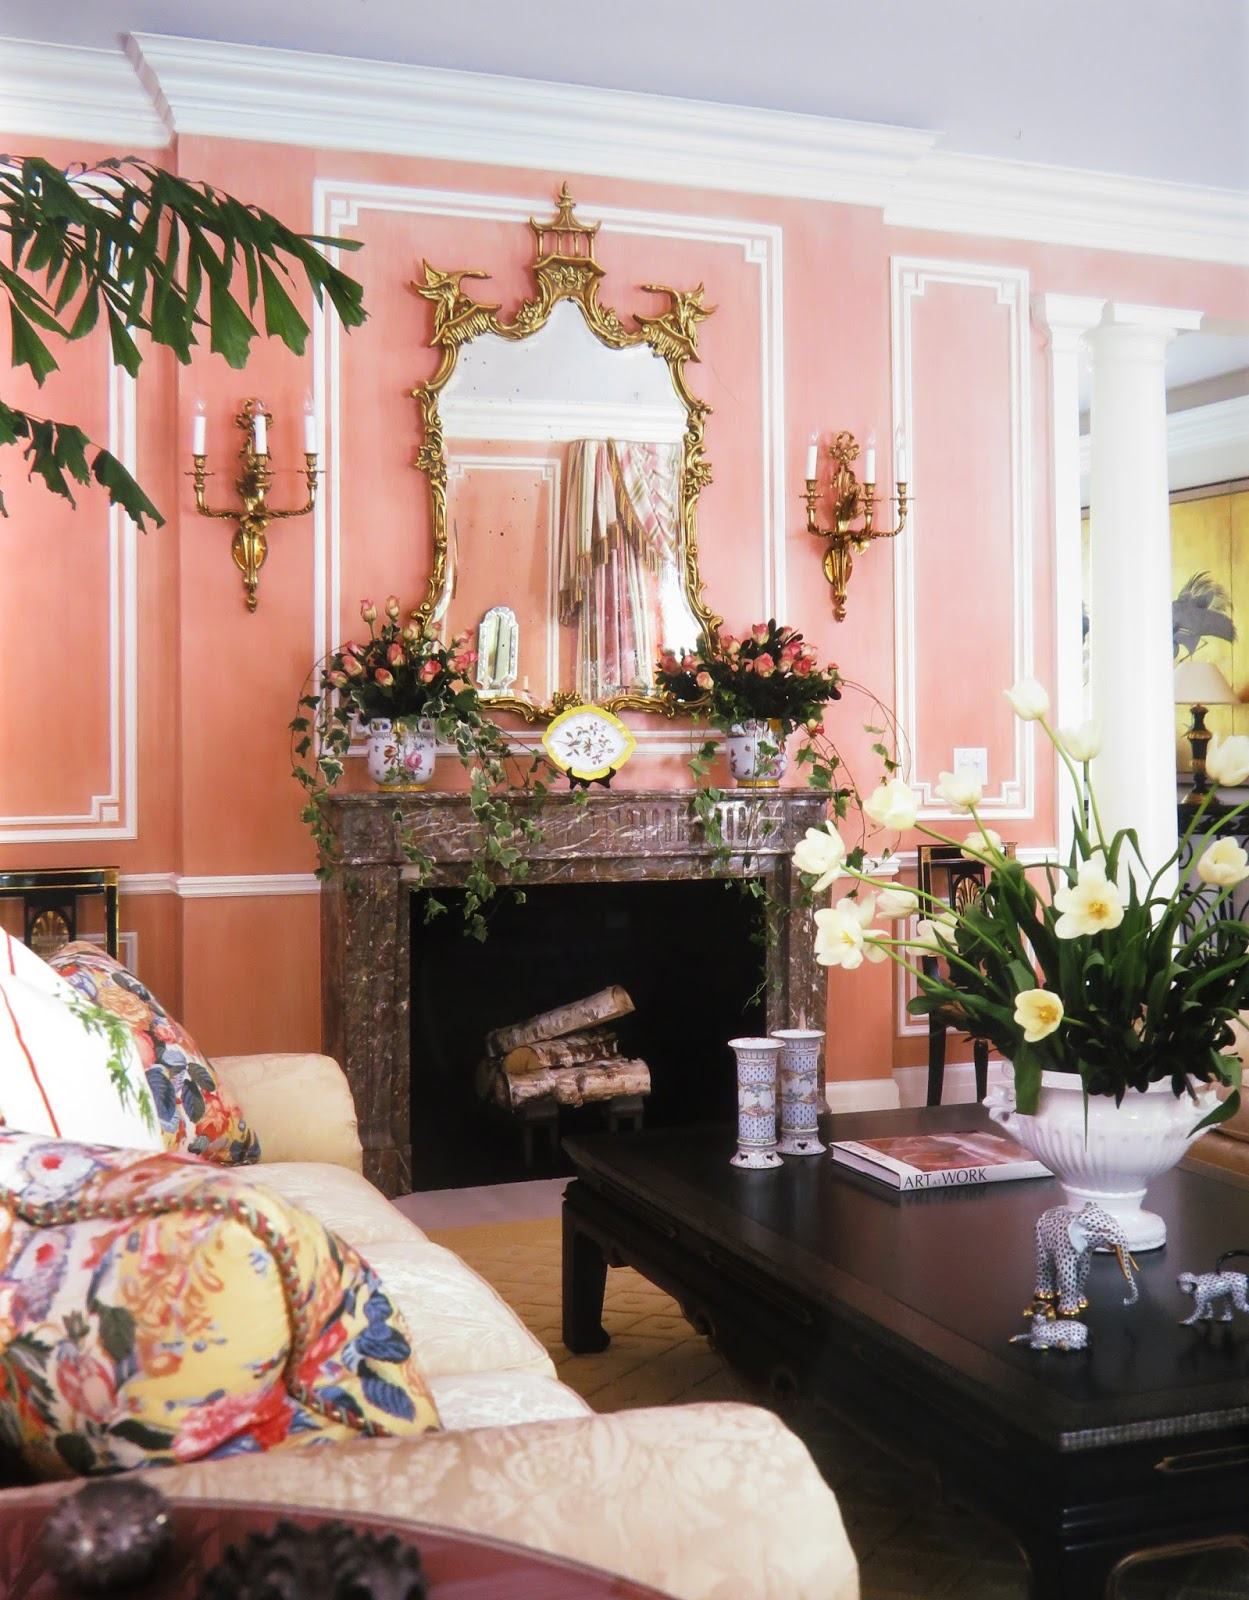 In Remembrance Of His Exceptional Talent, Today I Am Sharing A Few  Highlights Of His Work, Along With Two Home Tours From Florida Design.